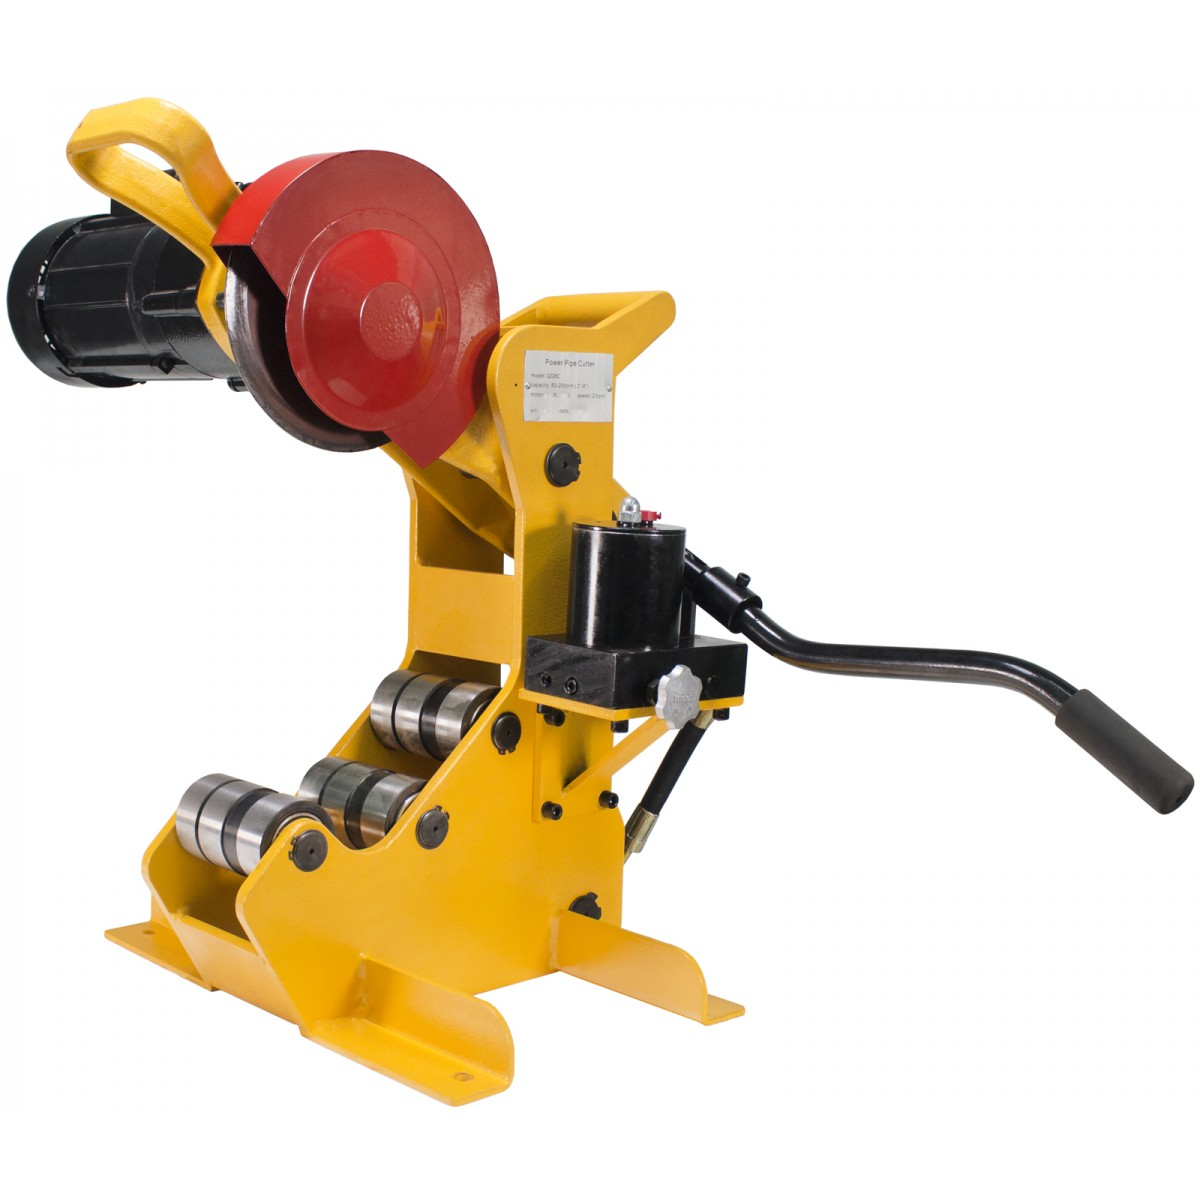 Sdt 258 G Power Pipe Cutter W 2 1 2 Quot 8 Quot Pipe Capacity